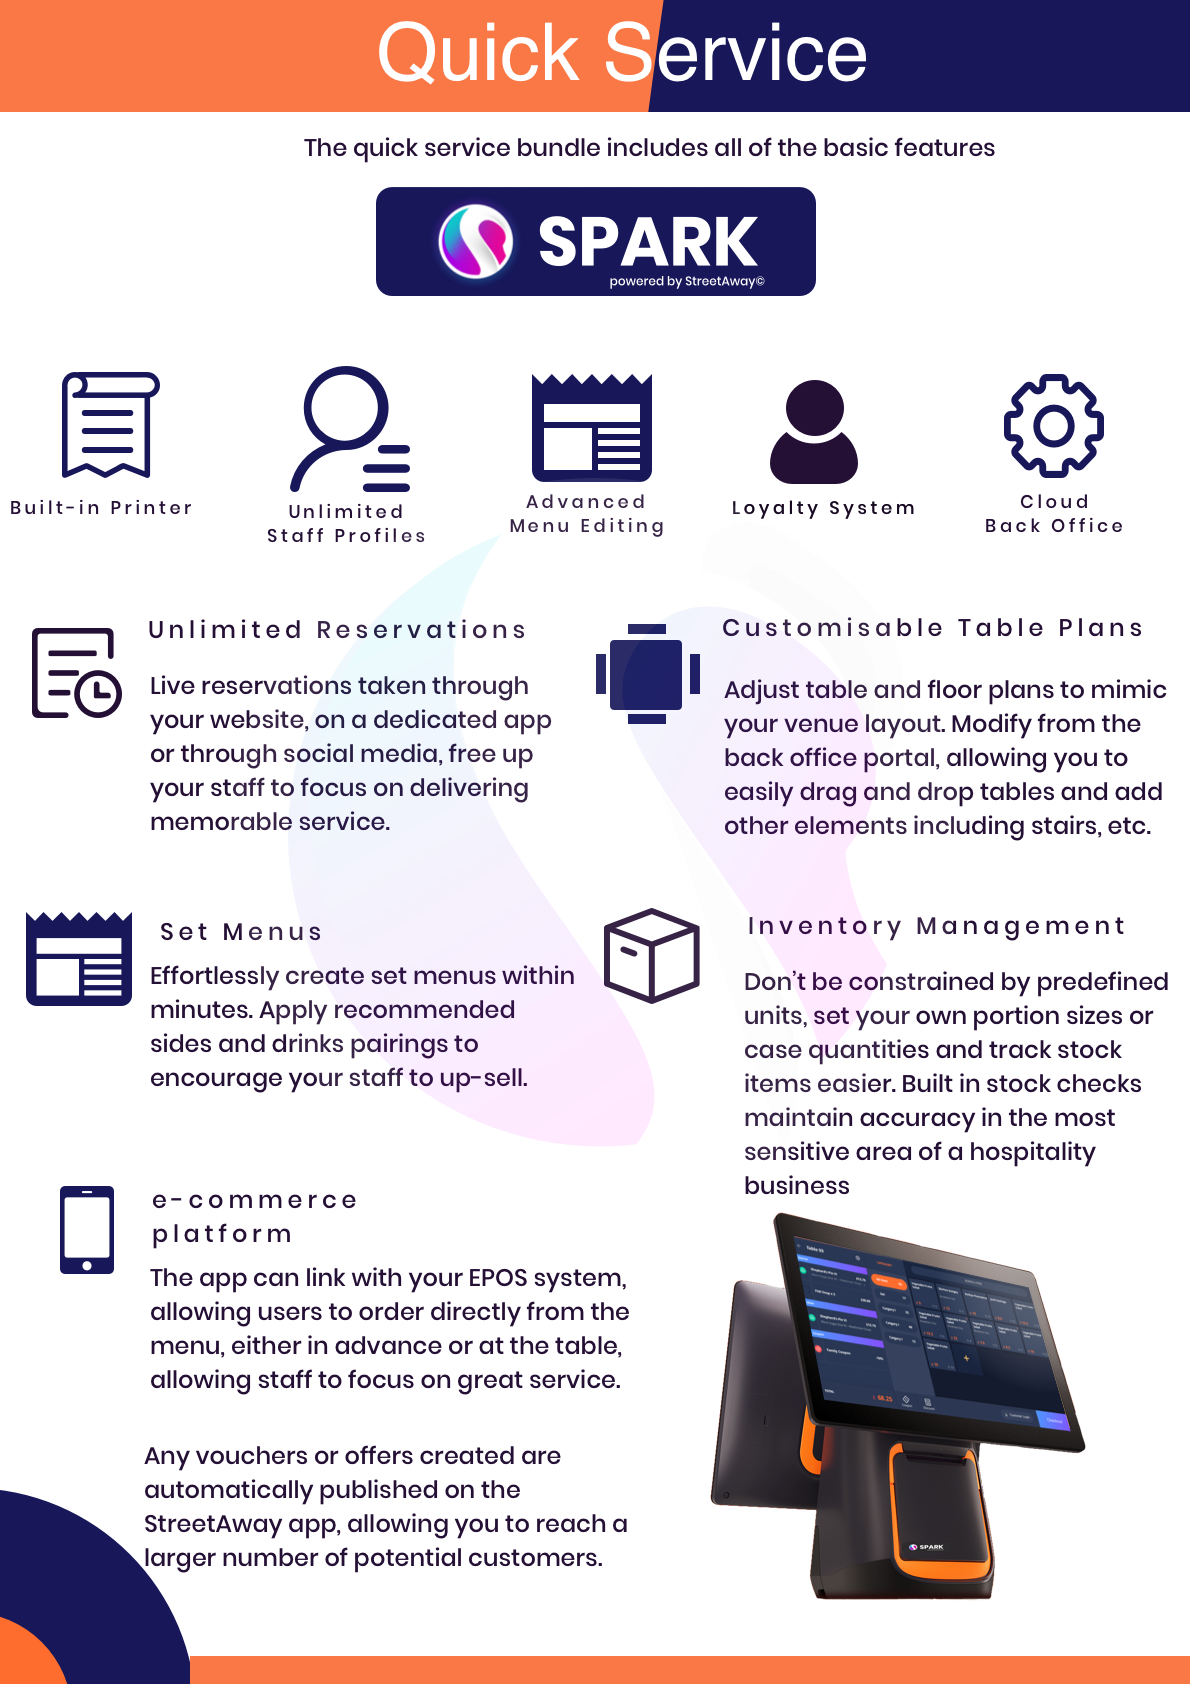 spark quick service bundle summary of features